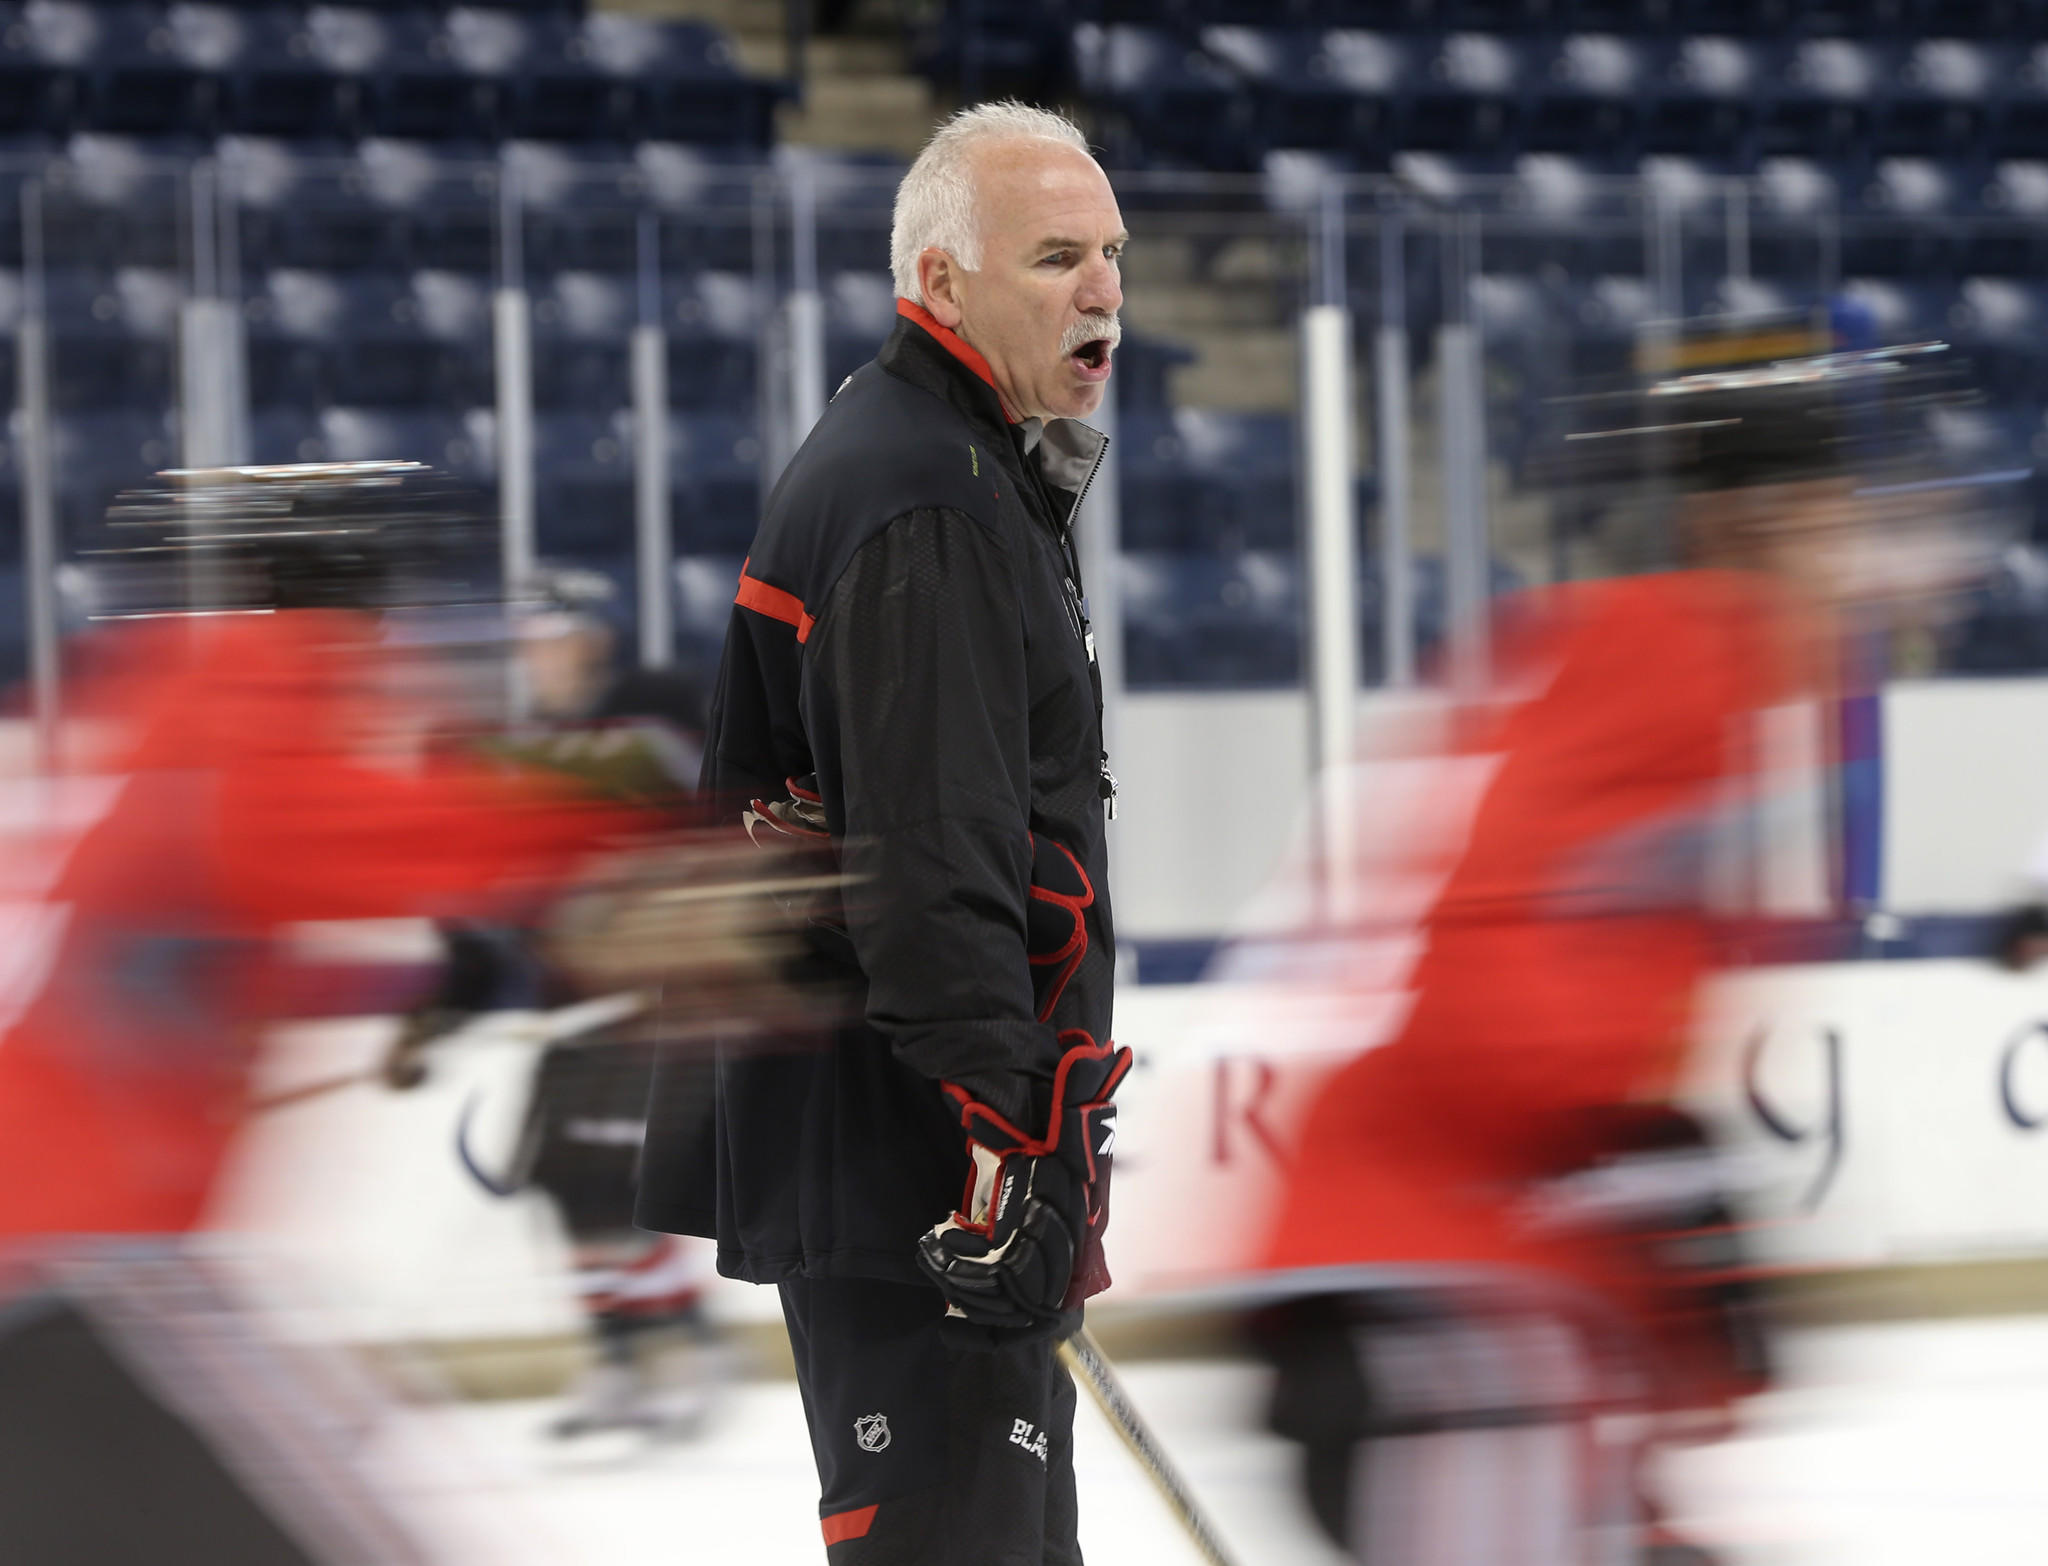 Chicago Blackhawks head coach Joel Quenneville runs practice Thursday, Sept. 12, 2013 at Notre Dame's Compton Family Ice Arena in South Bend.